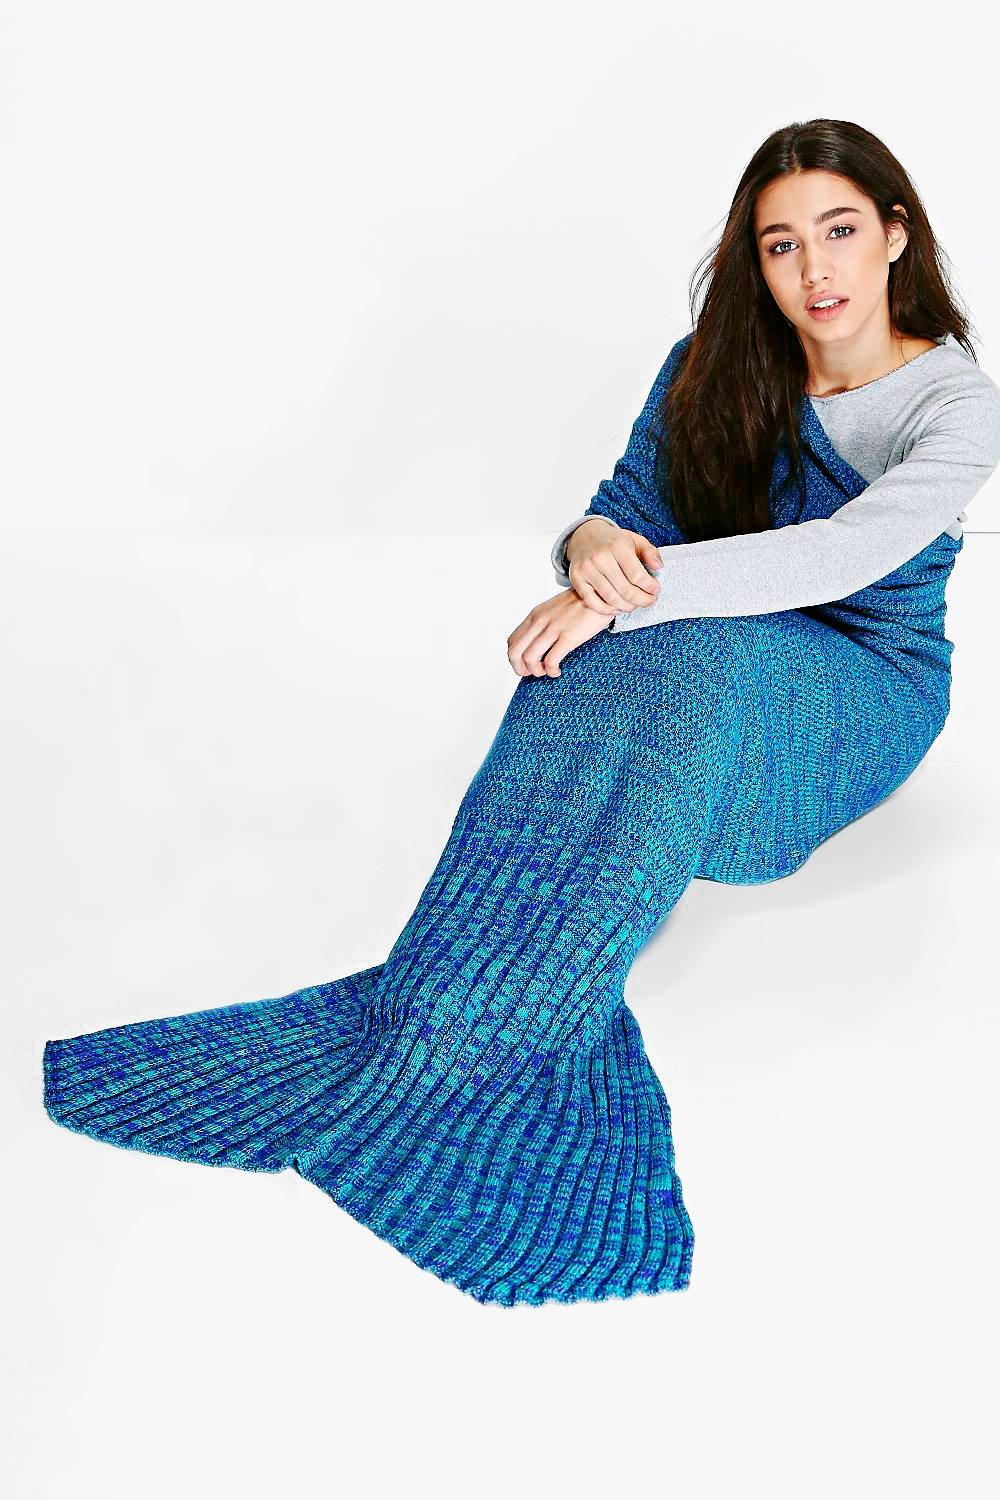 Purple & Jade Knitted Mermaid Tail Blanket